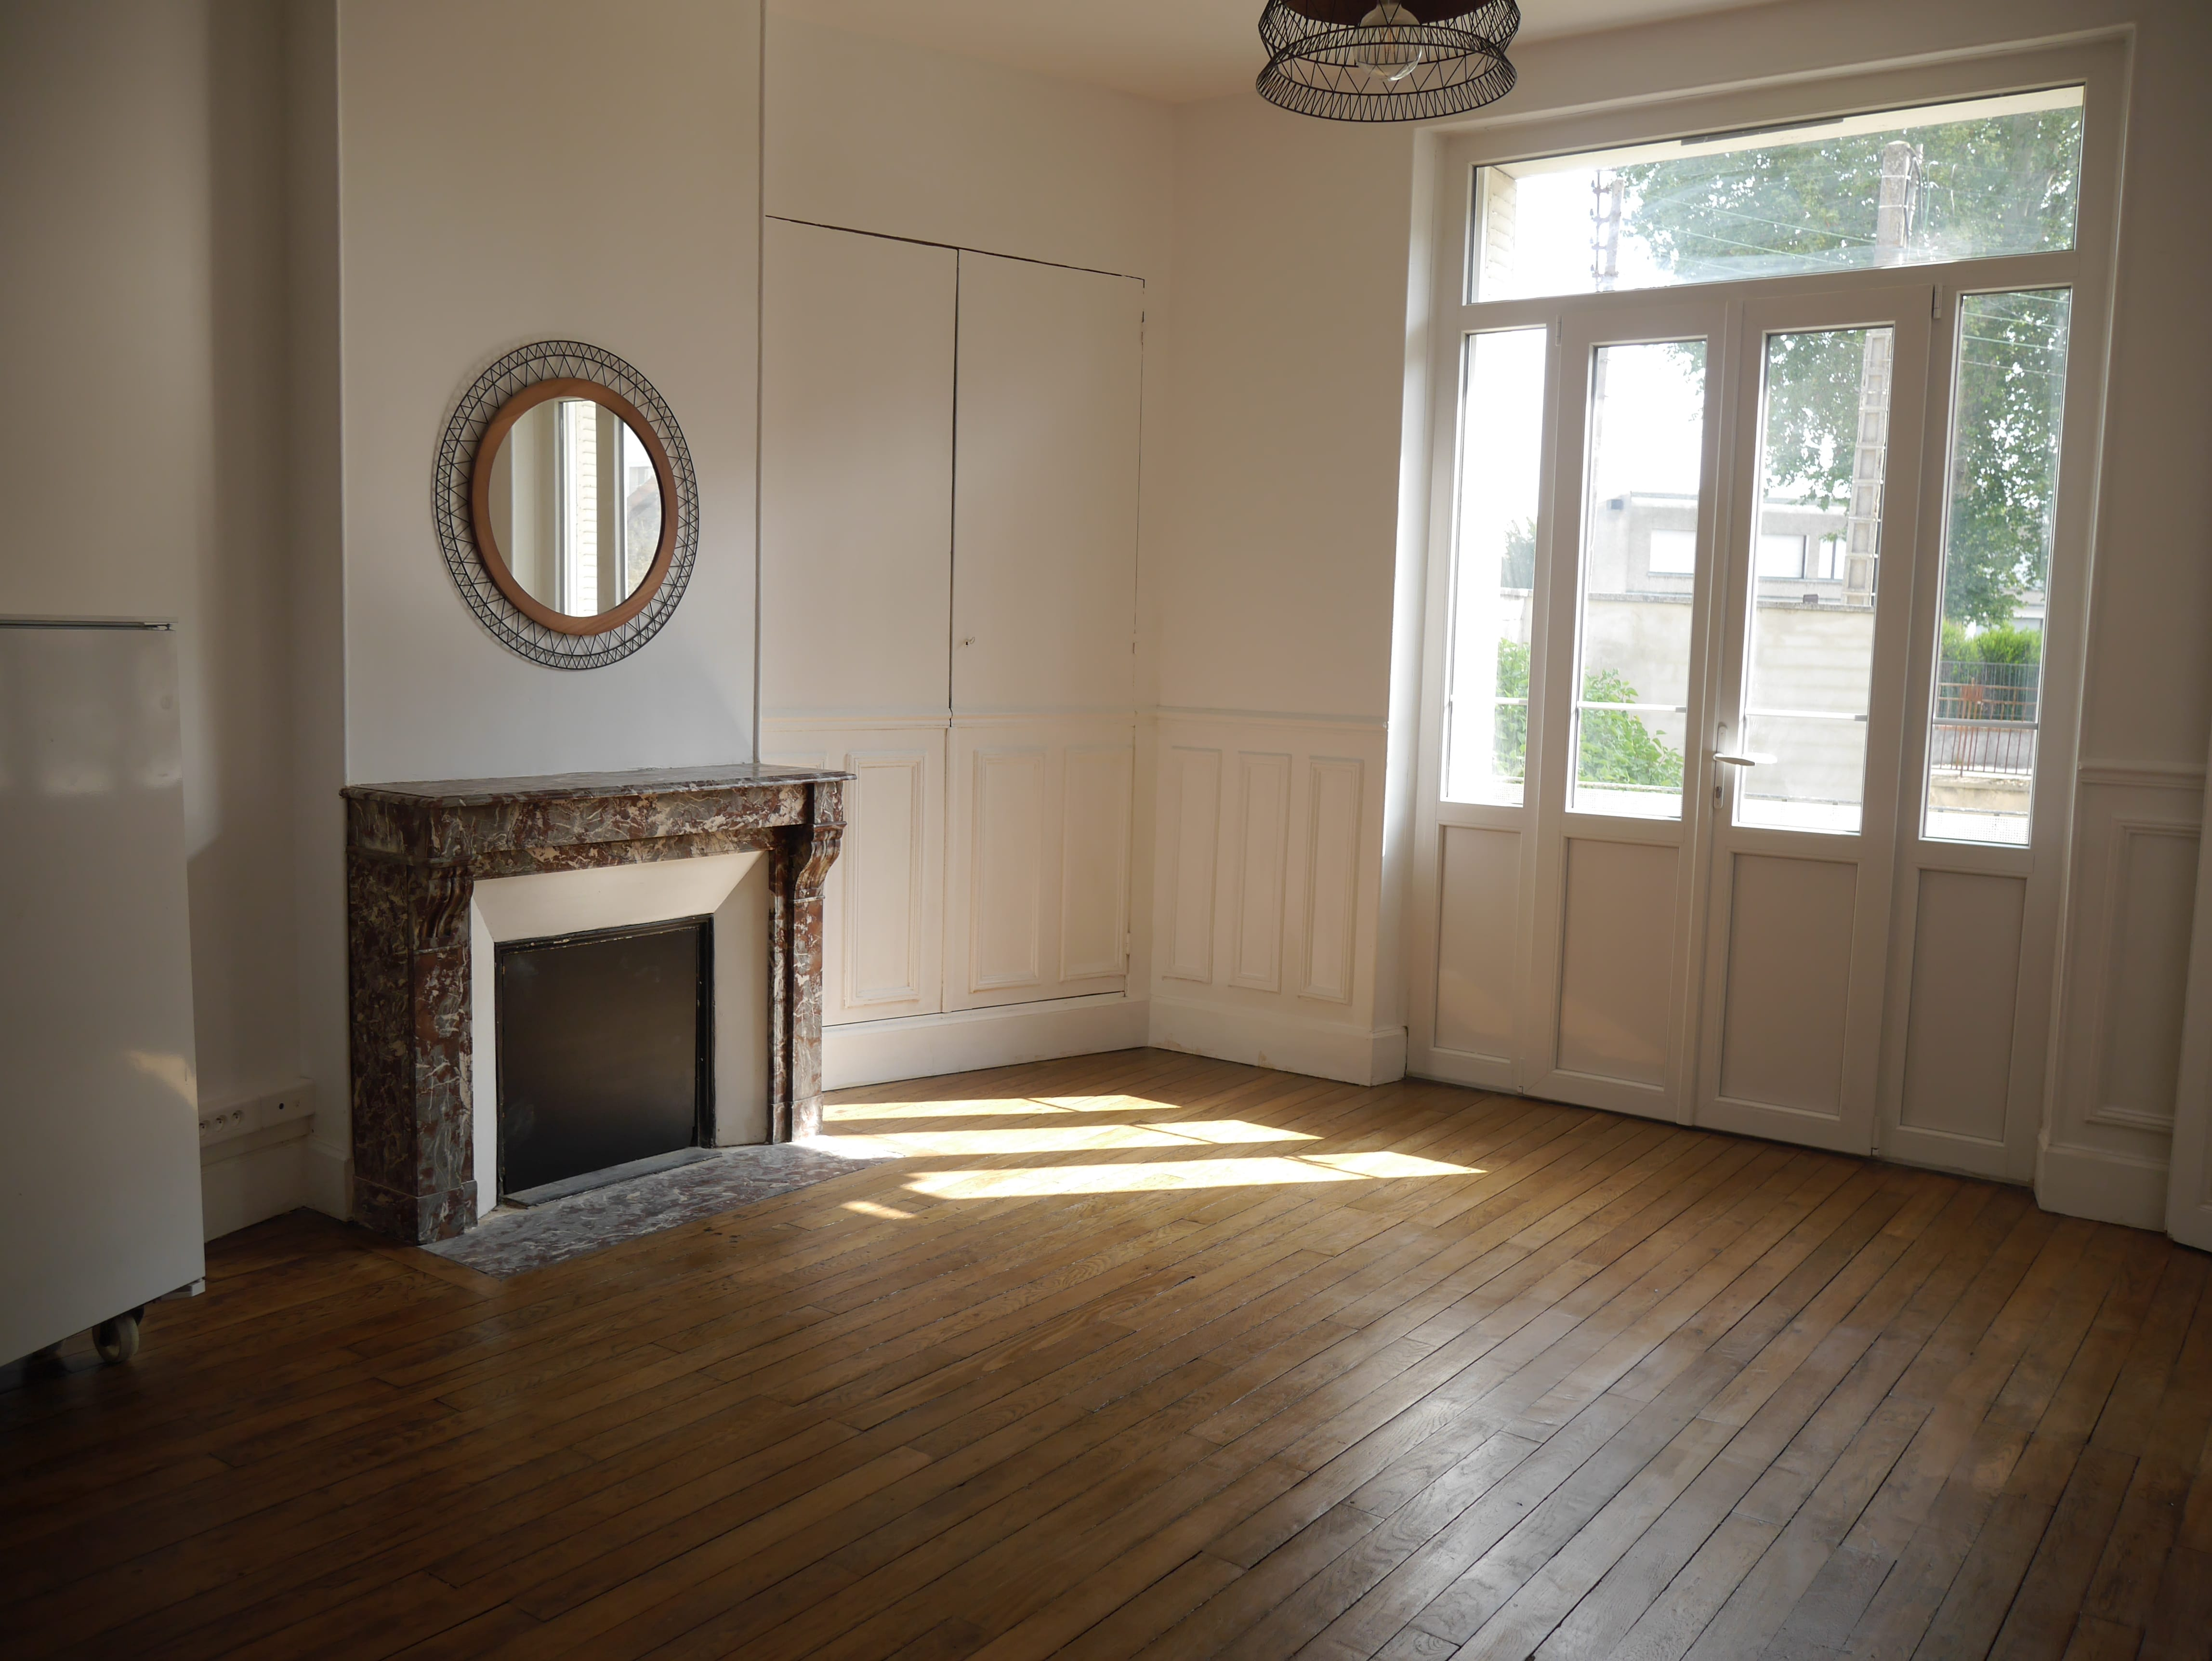 Damonte LOCATION APPARTEMENT T3 CHALONS EN CHAMPAGNE CL1607